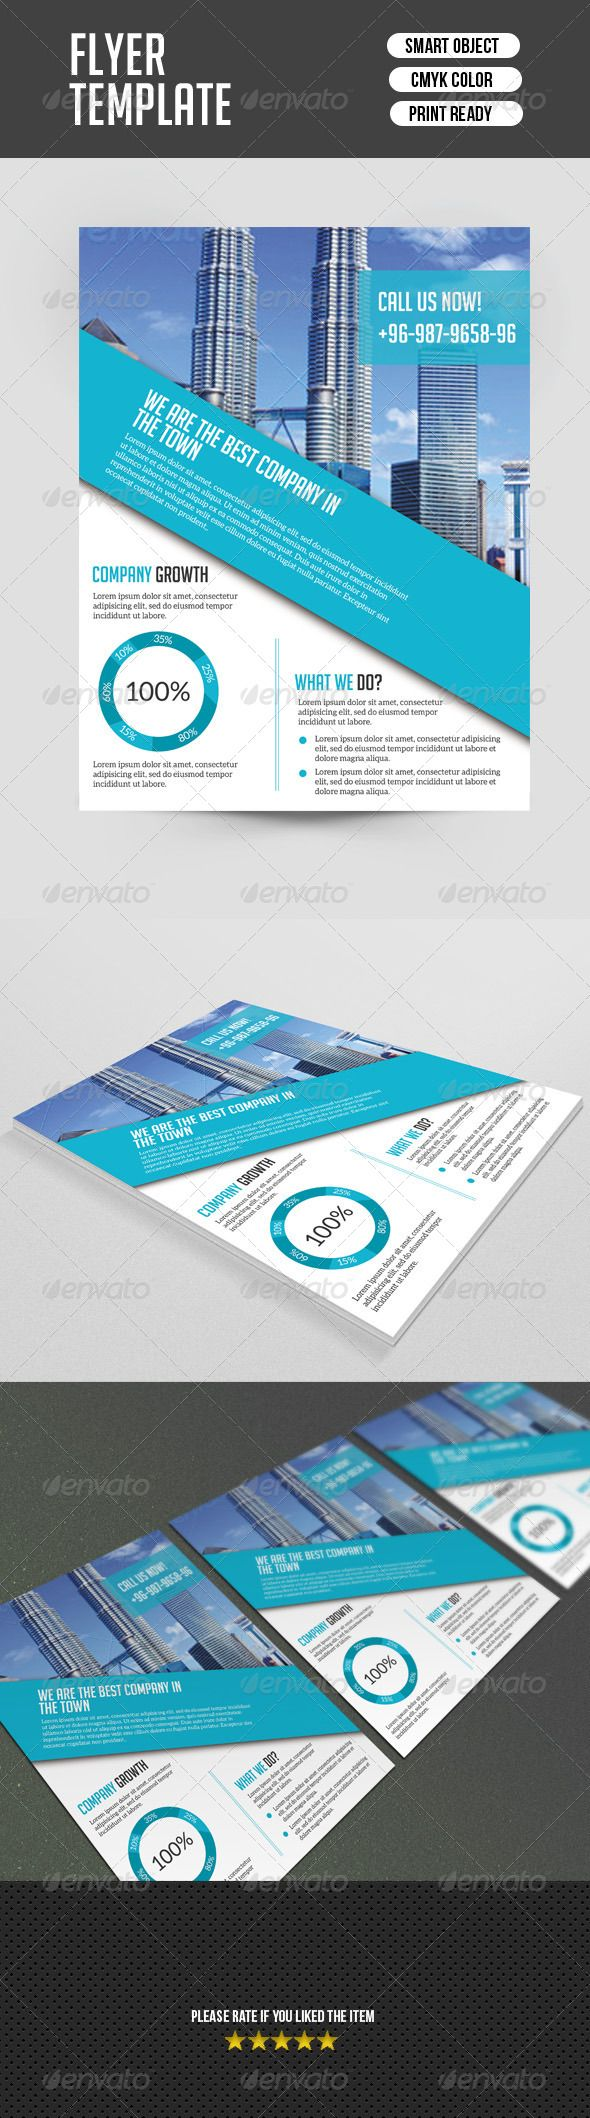 Best Business Flyer Templates Images On   Business